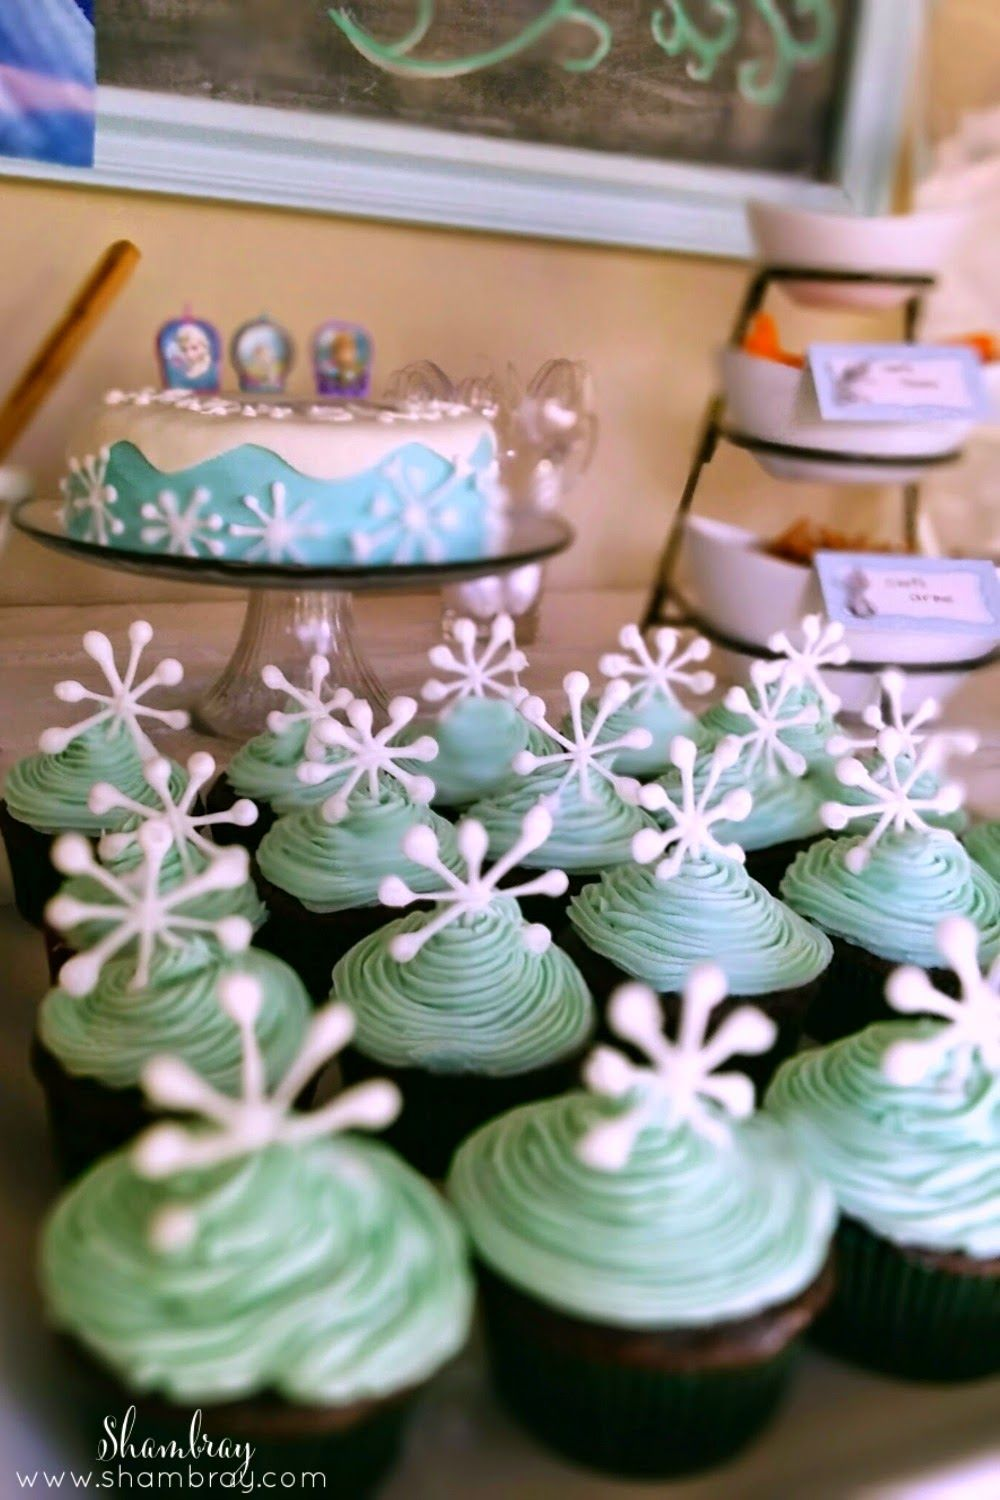 A Frozen Birthday Party For A 3 Year Old 3 Year Old Birthday